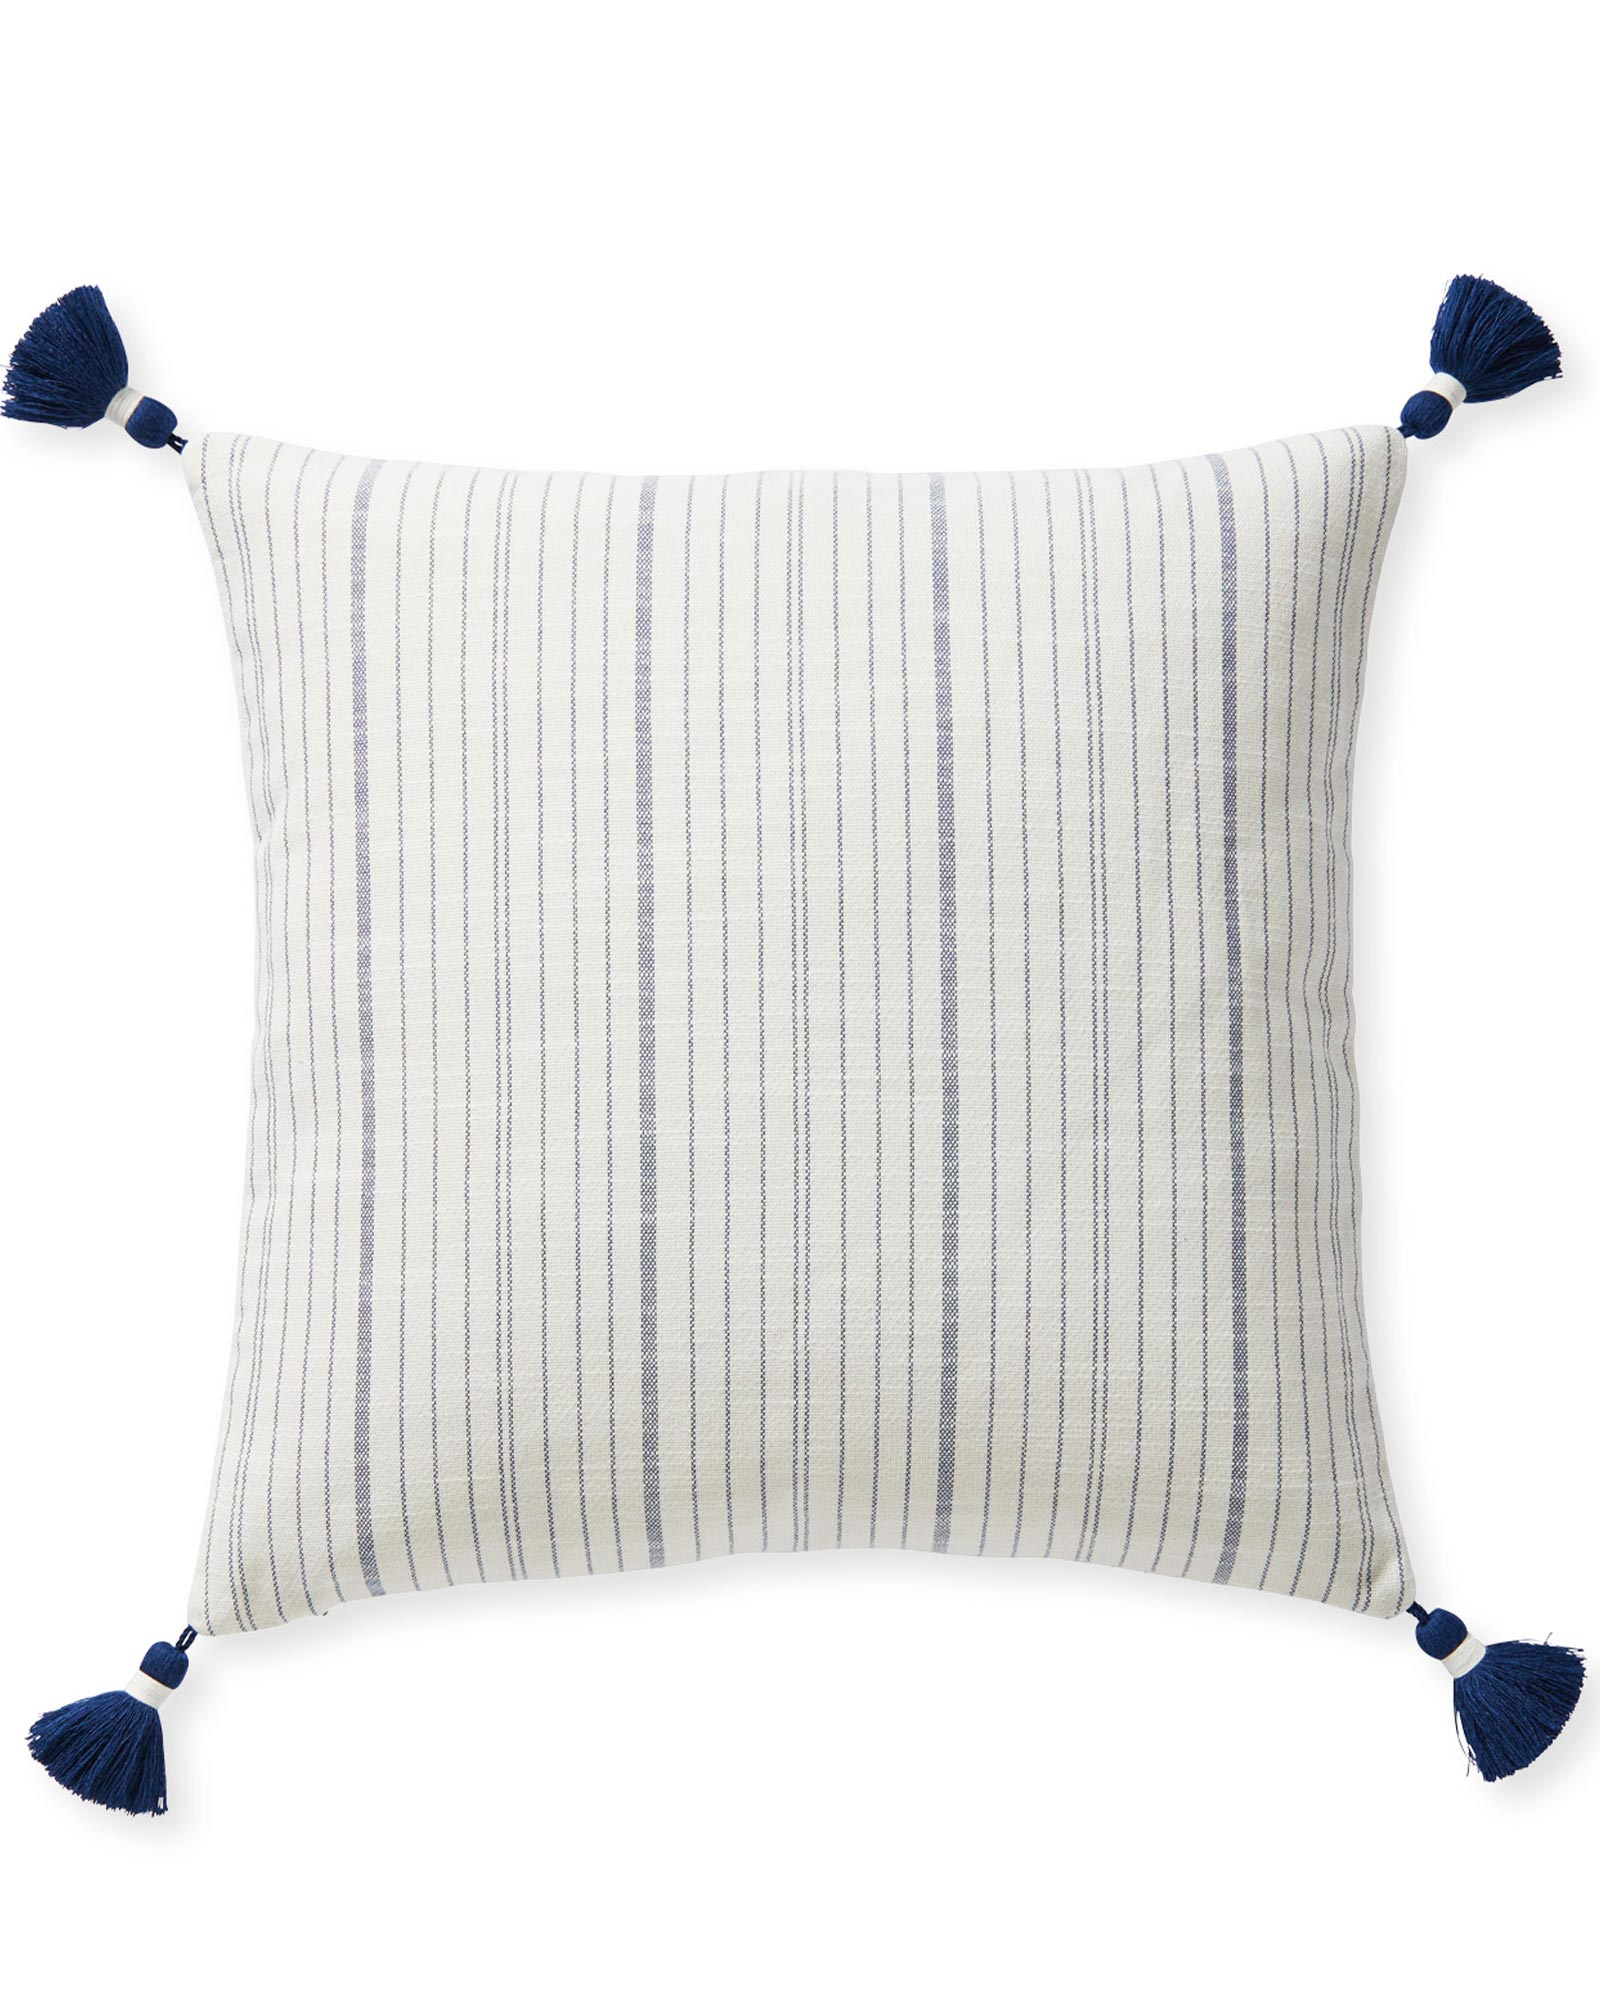 Surf Stripe Pillow Cover, Navy